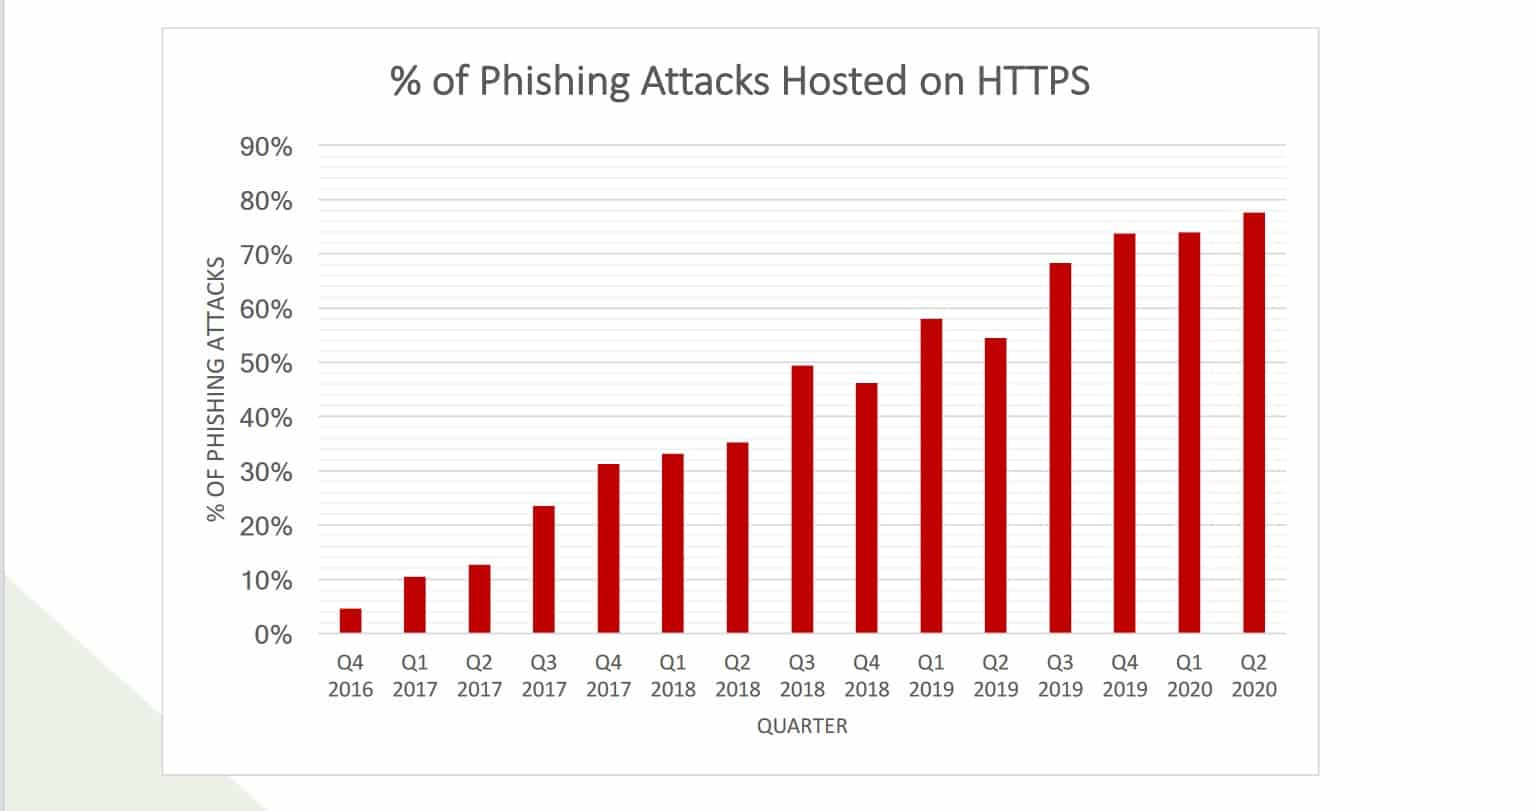 Phishing attacks hosted on HTTPS